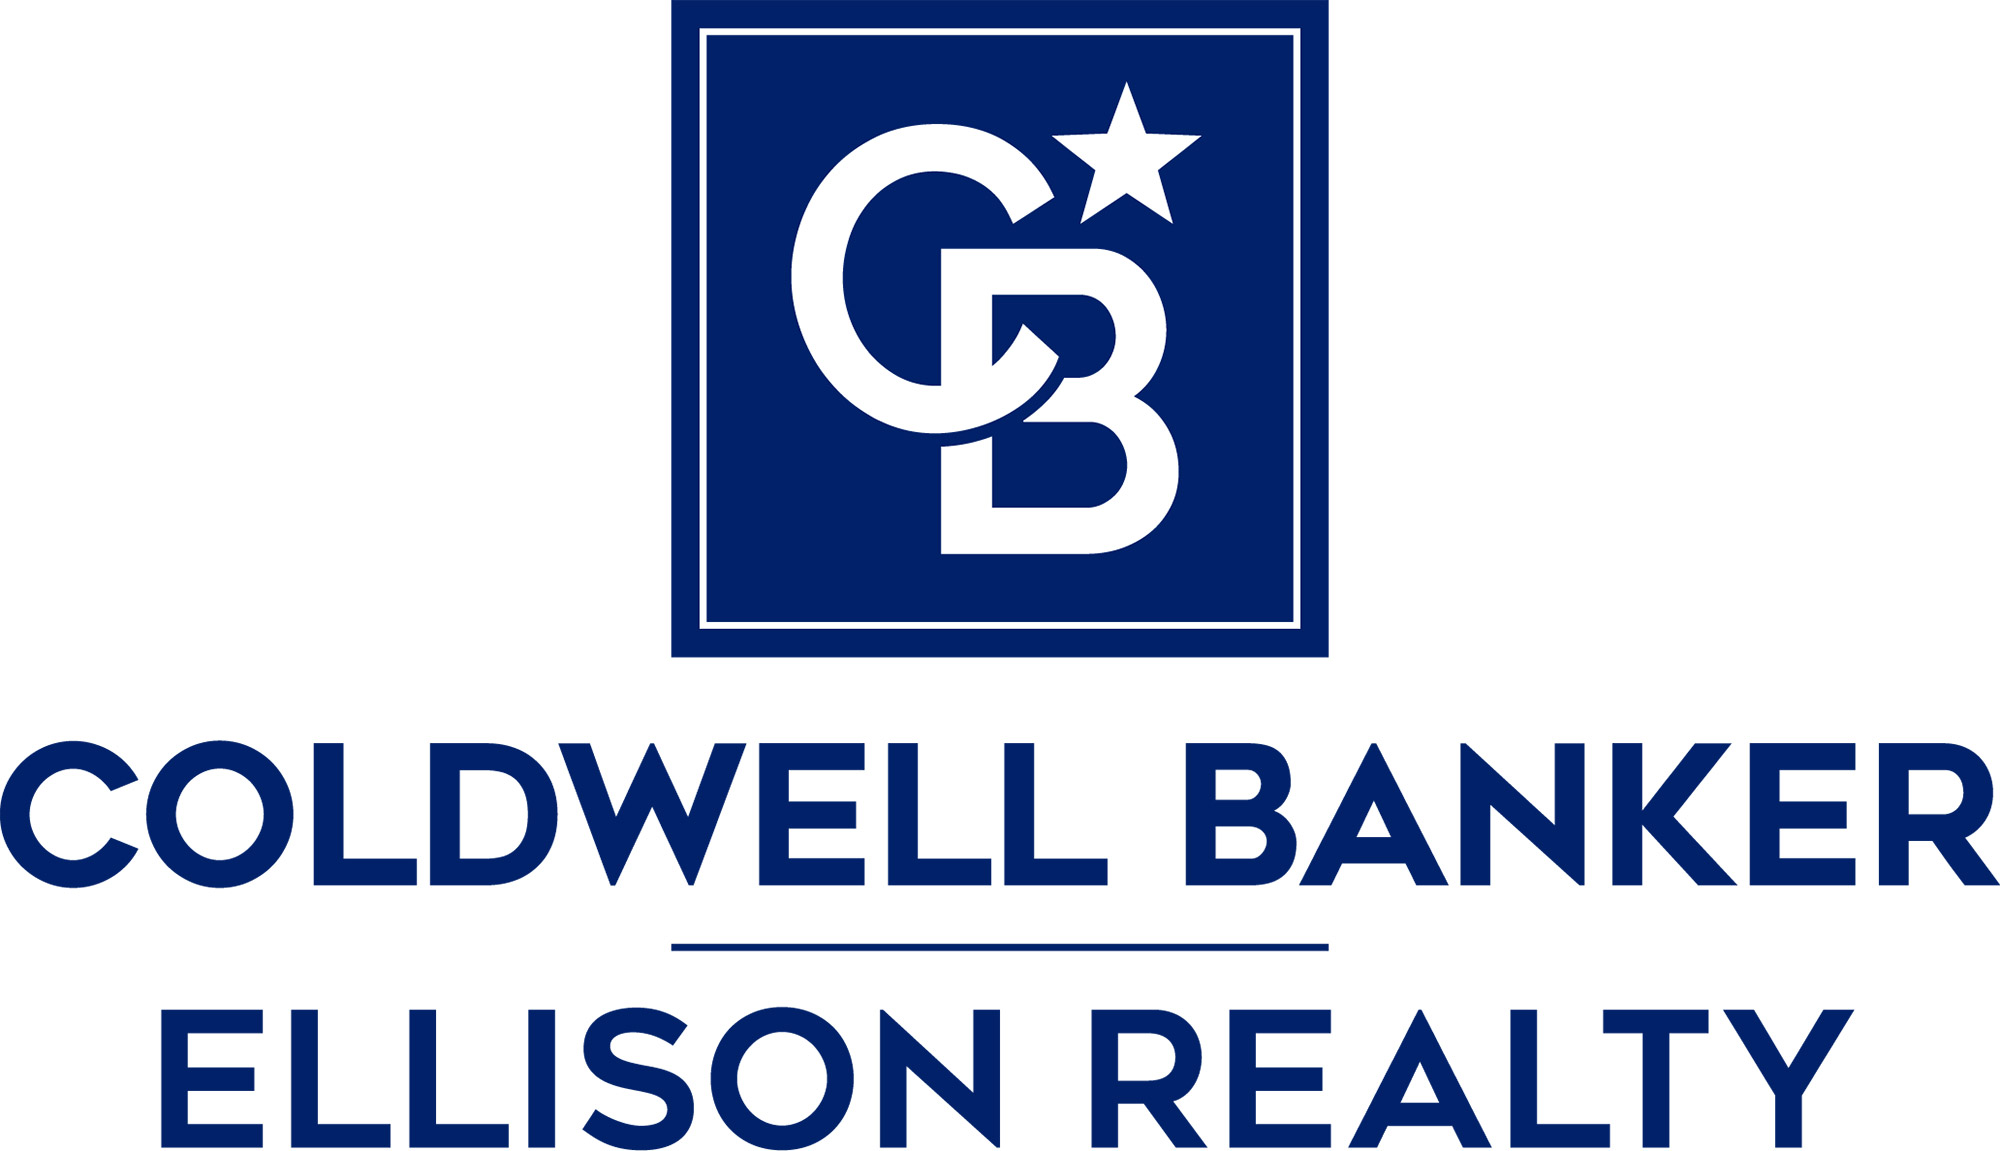 Tom Grills - Coldwell Banker Ellison Realty